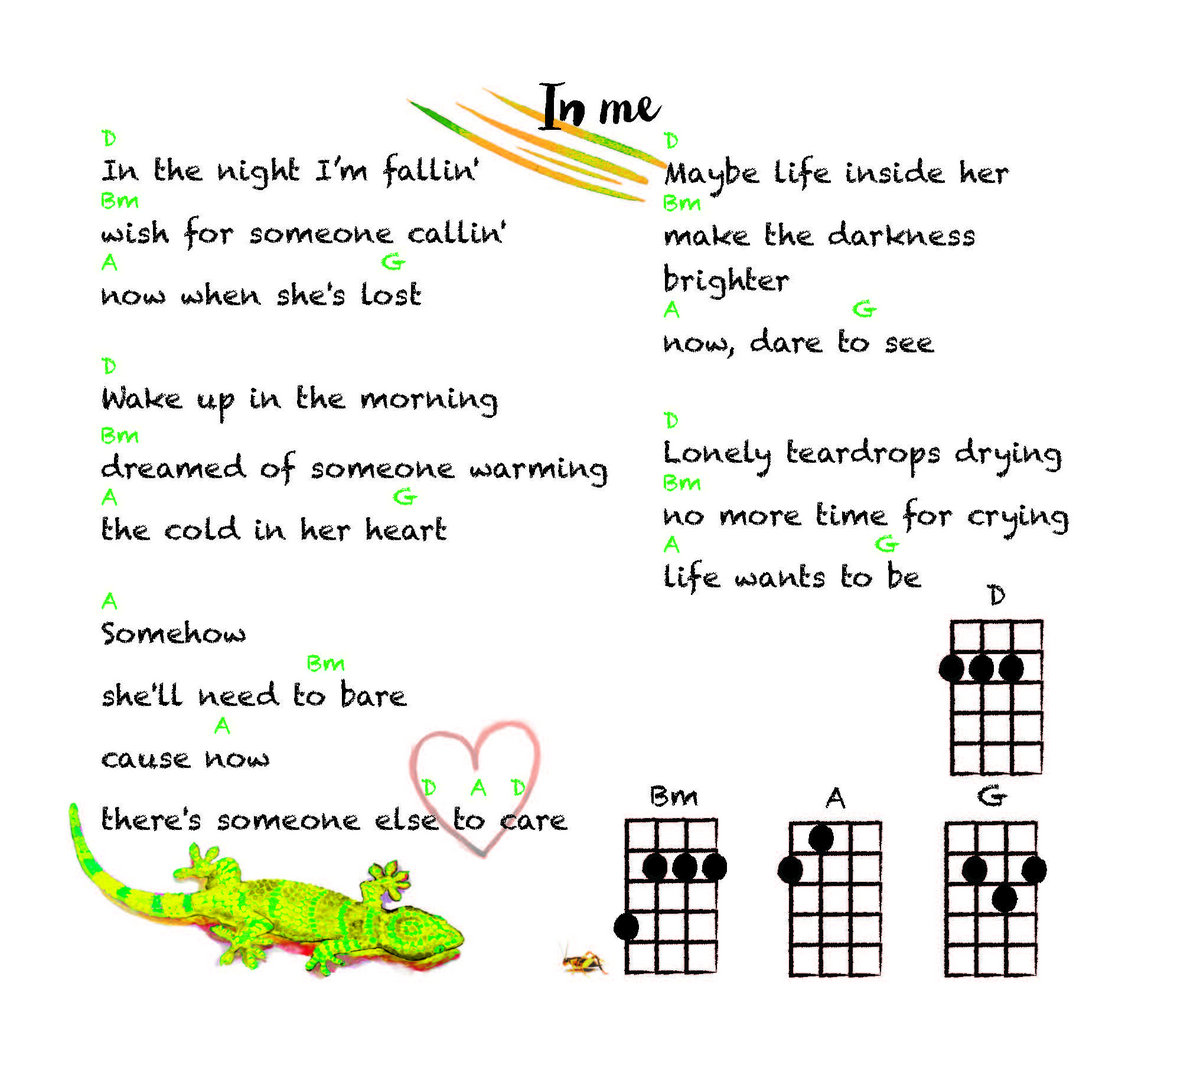 Living on the island julia parsley 15 original songs on cd with 14 ukulele lessons including chords and lyrics on 44 illustrated pages wrapped in a beautifully printed paperback album hexwebz Image collections